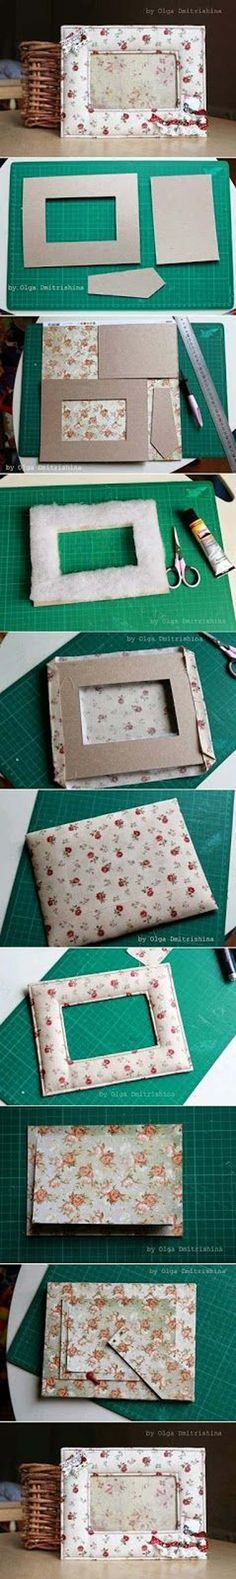 Best DIY Picture Frames and Photo Frame Ideas - Nice Soft Photo Frame - How To Make Cool Handmade Projects from Wood, Canvas, Instagram Photos. Creative Birthday Gifts, Fun Crafts for Friends and Wall Art Tutorials http://diyprojectsforteens.com/diy-picture-frames